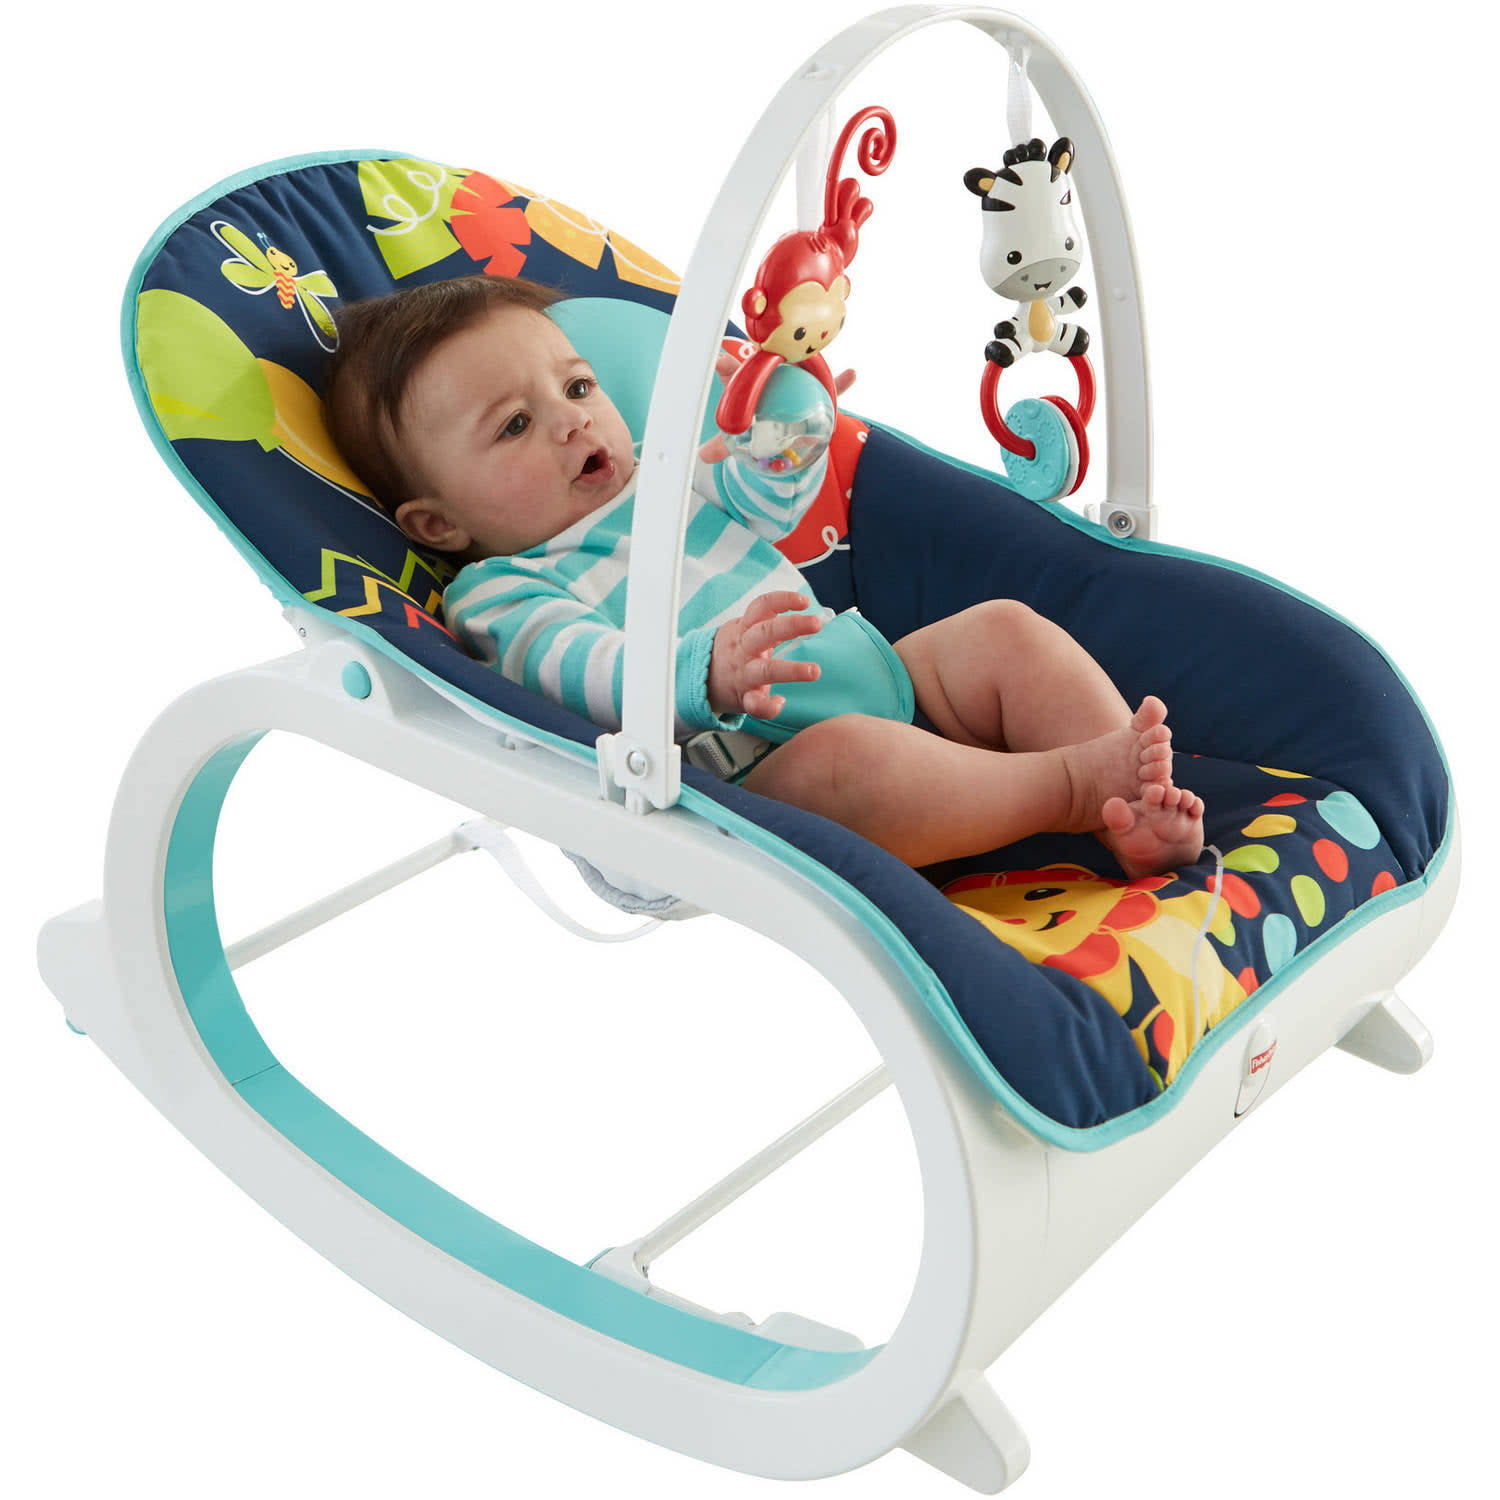 Baby rocker chair fisher price - Fisher Price Infant To Baby Seat Bouncer Toddler Rocker Chair Sleeper Toy Blue